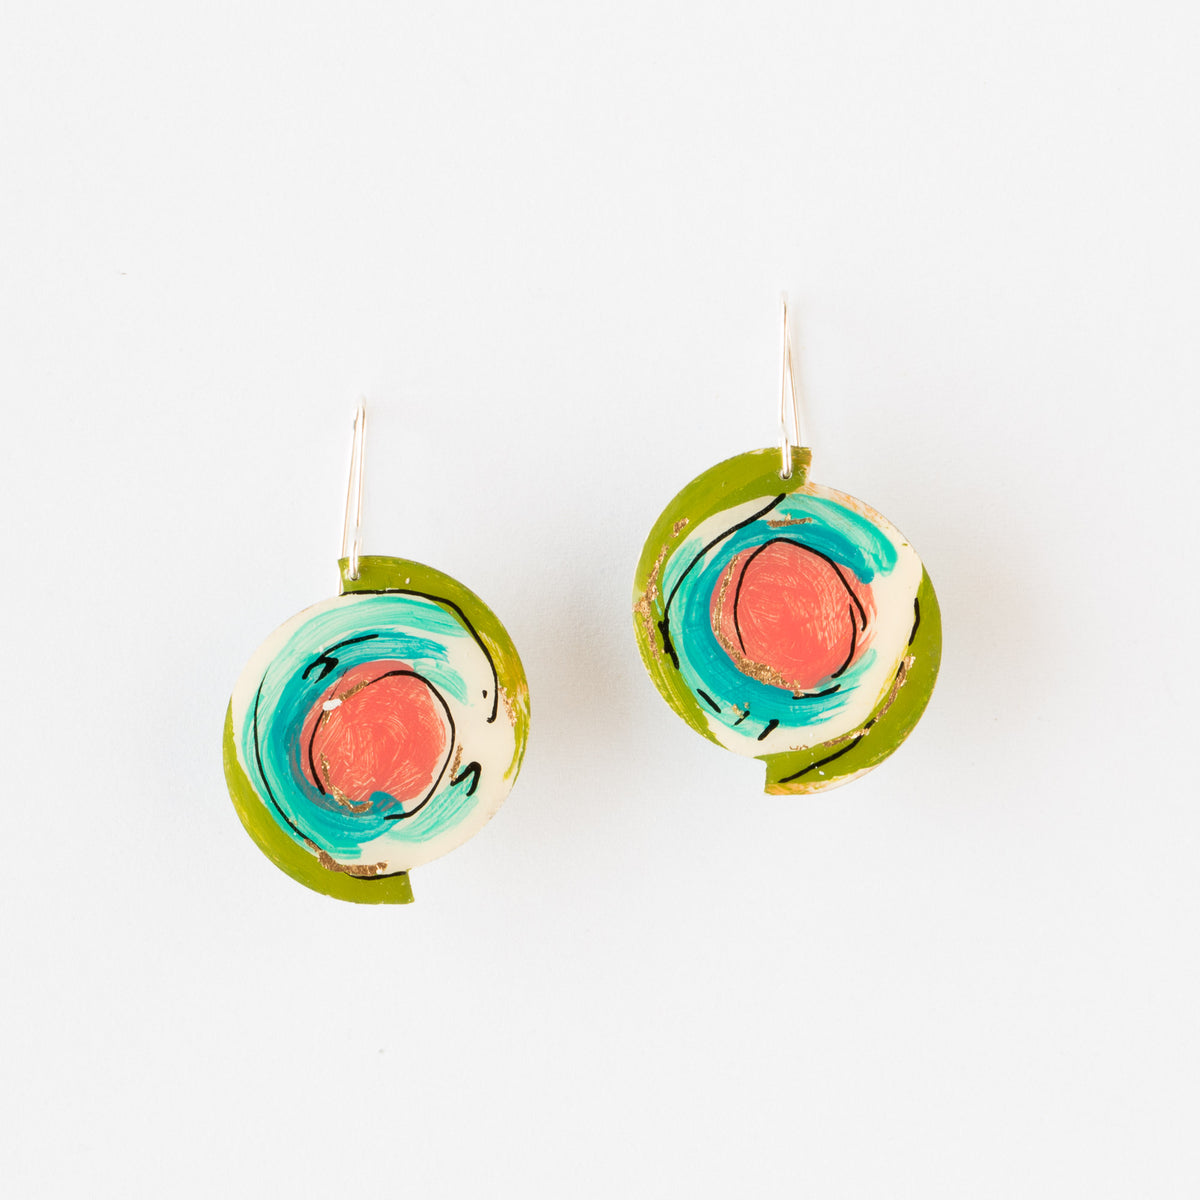 745 - Round Hand Painted Contemporary  Earrings - Sold by Chic & Basta